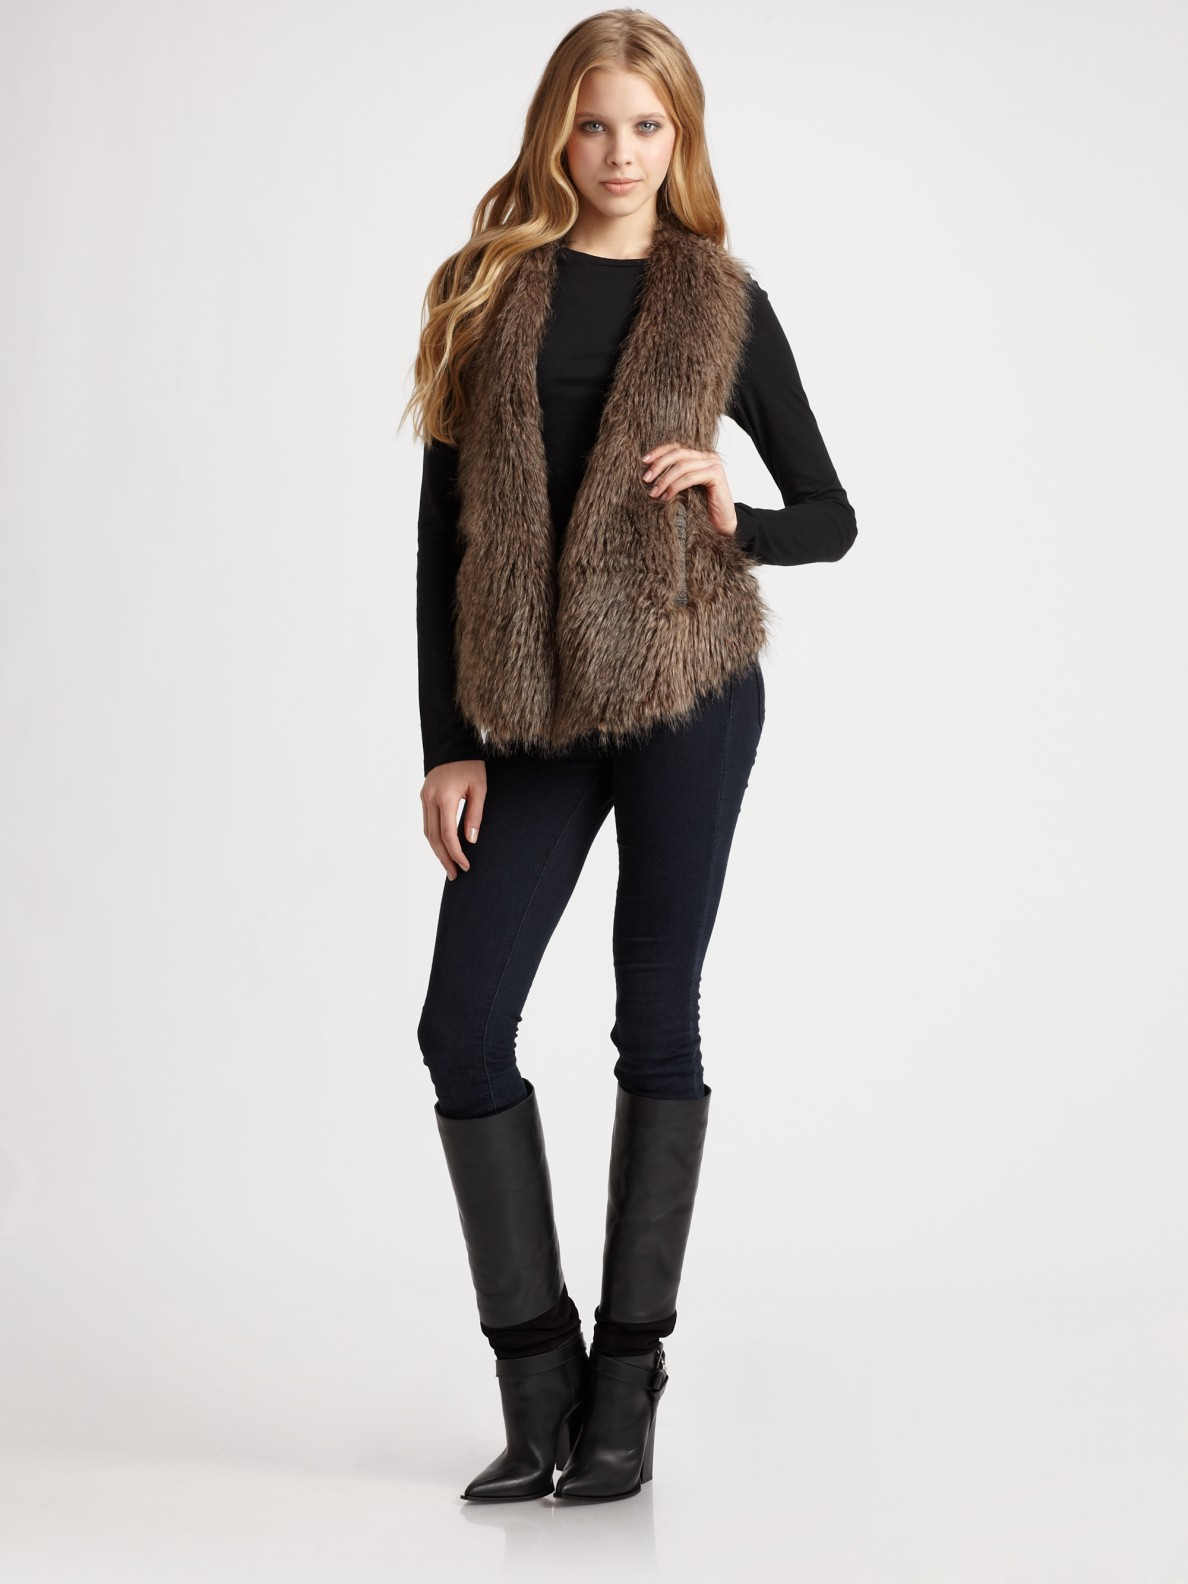 Brown faux fur child vest, long furry girls vest, tan fur vest, black fur vest, brown fur vest HinkleysHooks. 5 out of 5 stars (1,) $ Favorite Add to There are faux fur vest for sale on Etsy, and they cost $ on average. The most common faux fur vest material is faux fur. The most popular color? You guessed it.